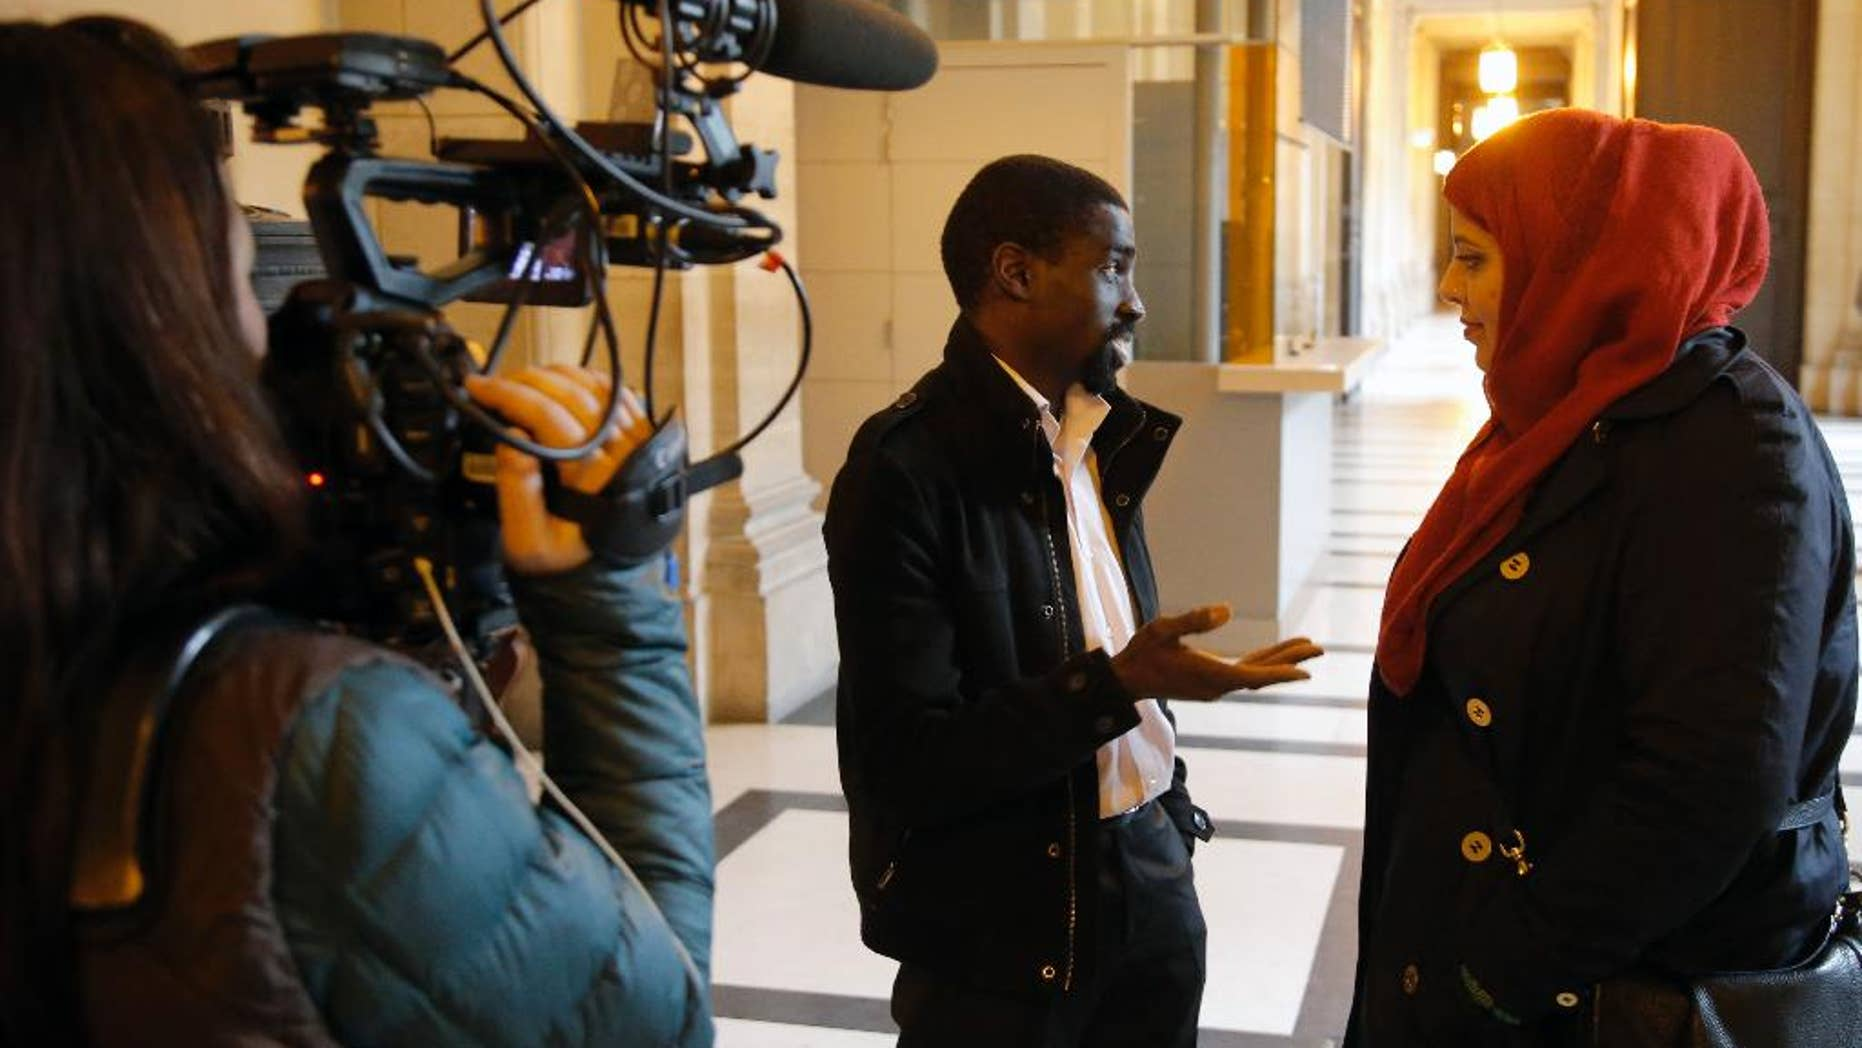 FILE - In this Feb.25, 2015 file photo, plaintiff Bocar, center, is interviewed by the media at the Paris appeals court in Paris, France. A French appeals court has ruled Wednesday June 24, 2015 that police carried out unjustified identity checks on five minority men, ordering the government to pay them damages in an unprecedented ruling that activists hope will help reduce widespread discrimination. (AP Photo/Francois Mori, File)